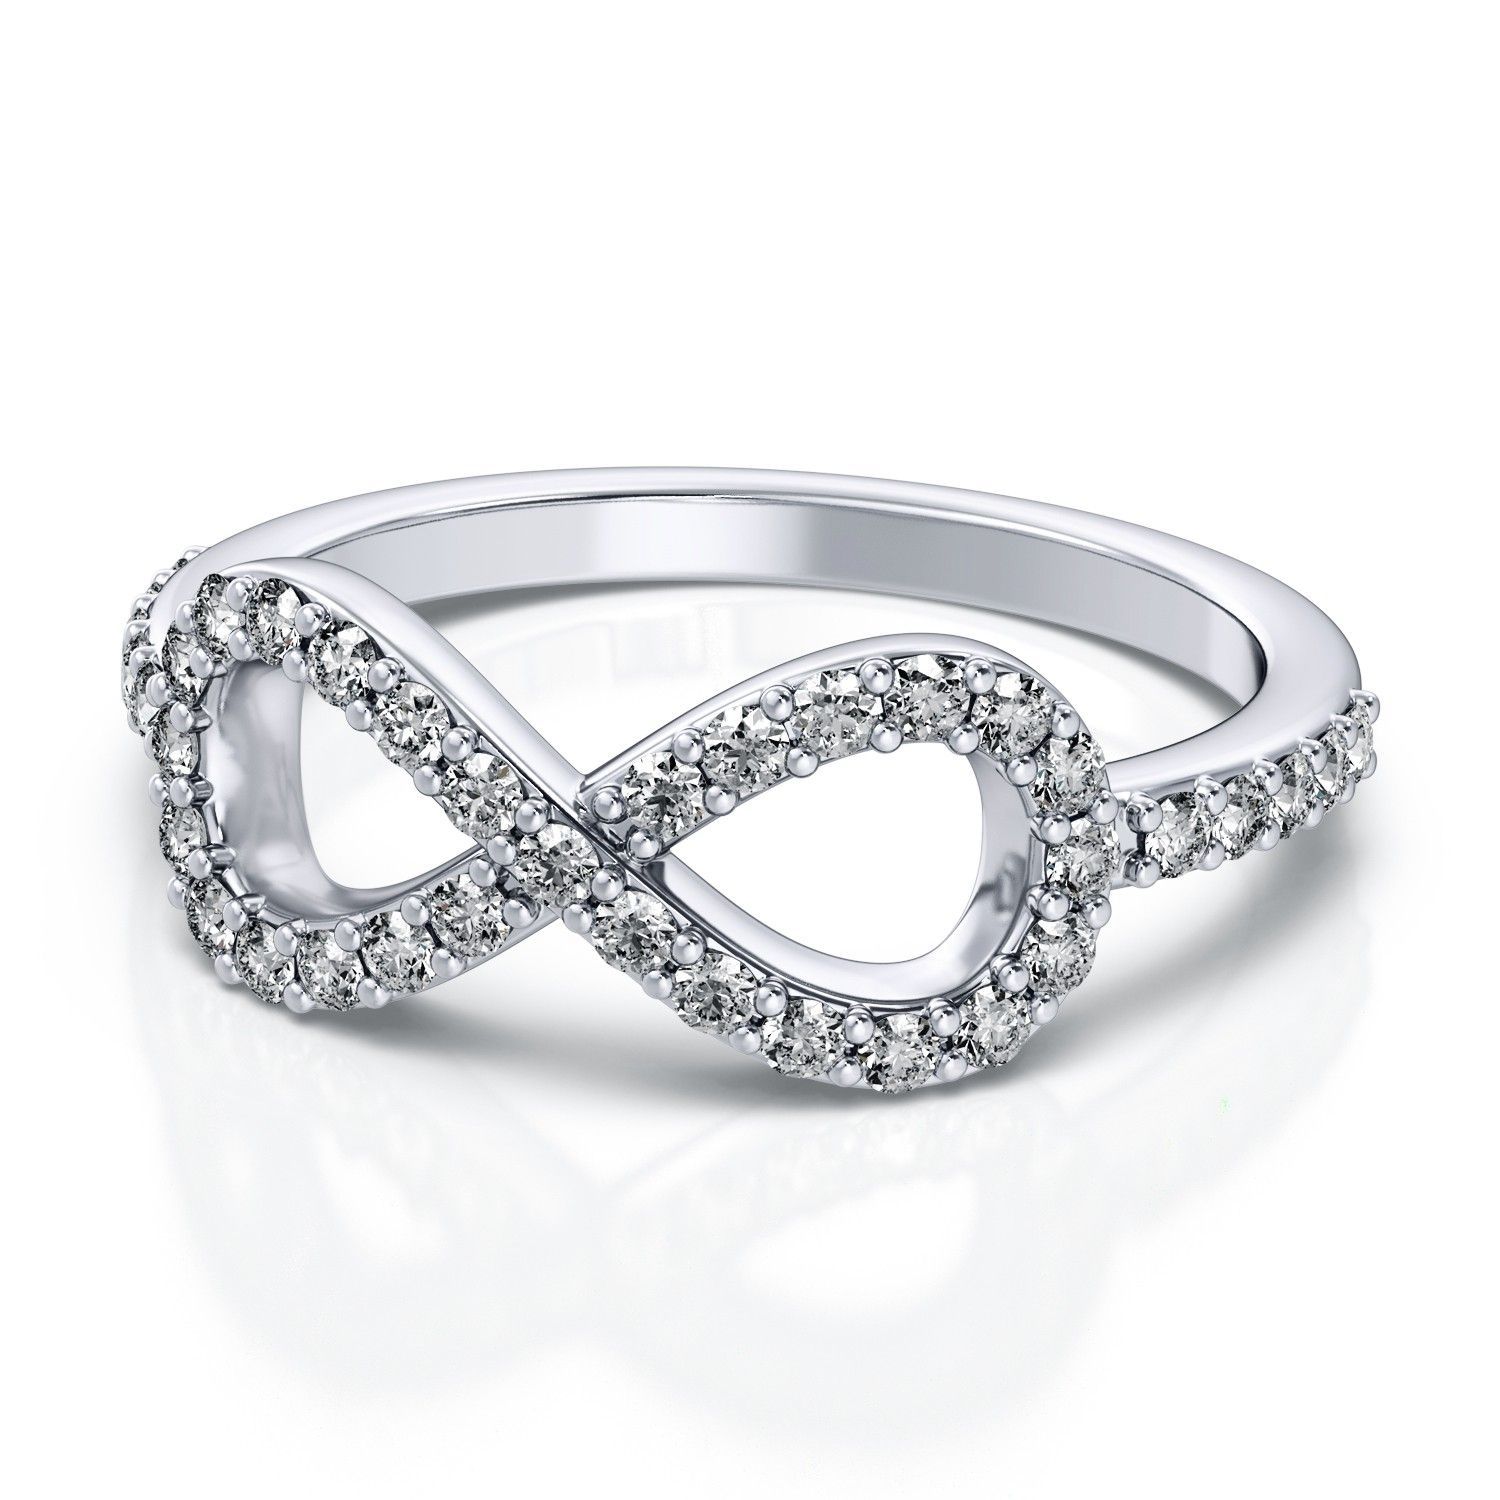 39ctw Infinite Love Fashion Diamond Ring in 18k White Gold VS G H